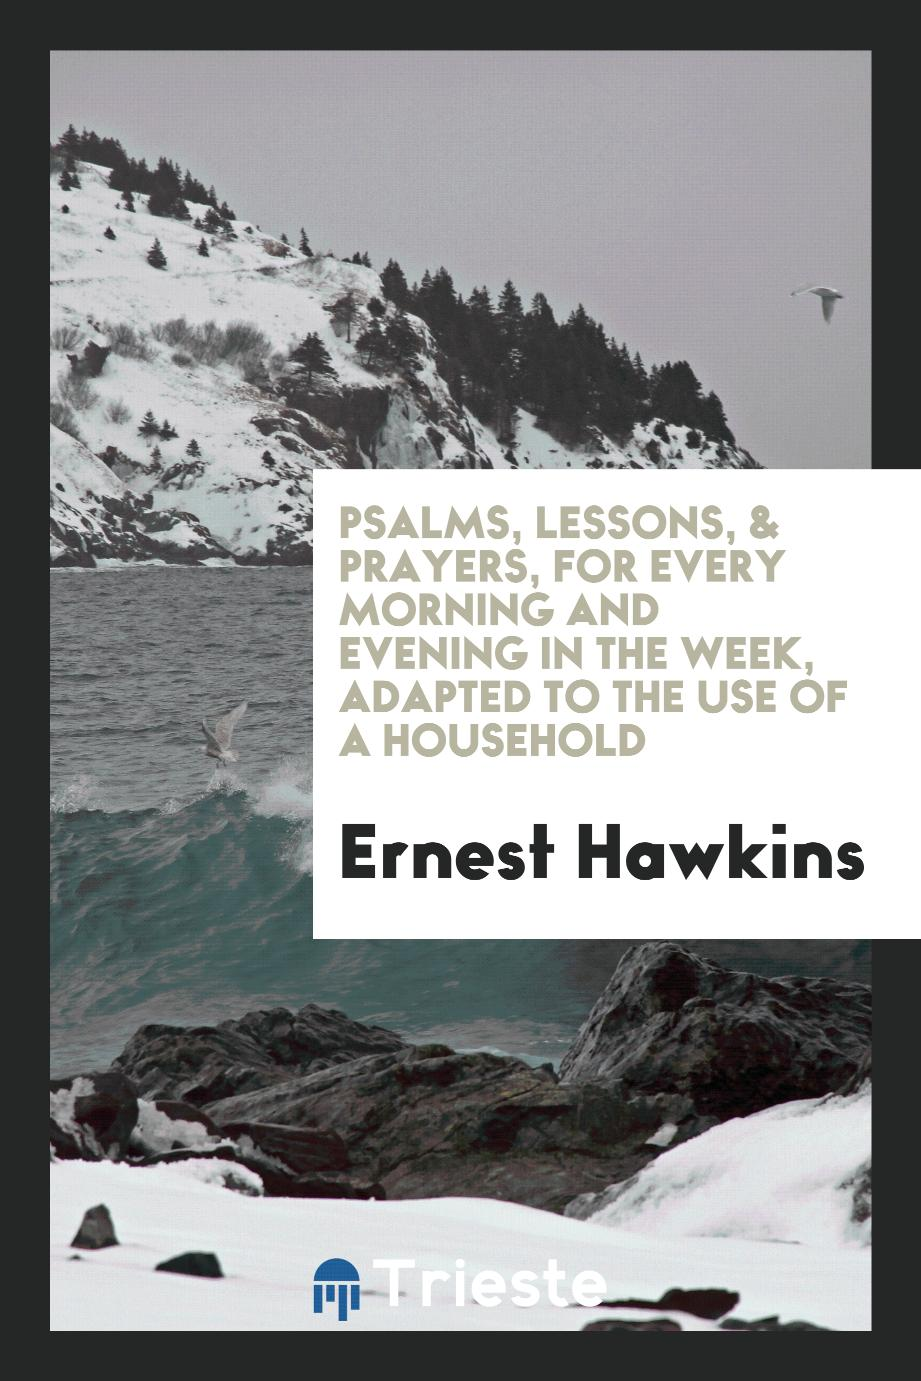 Psalms, lessons, & prayers, for every morning and evening in the week, adapted to the use of a household